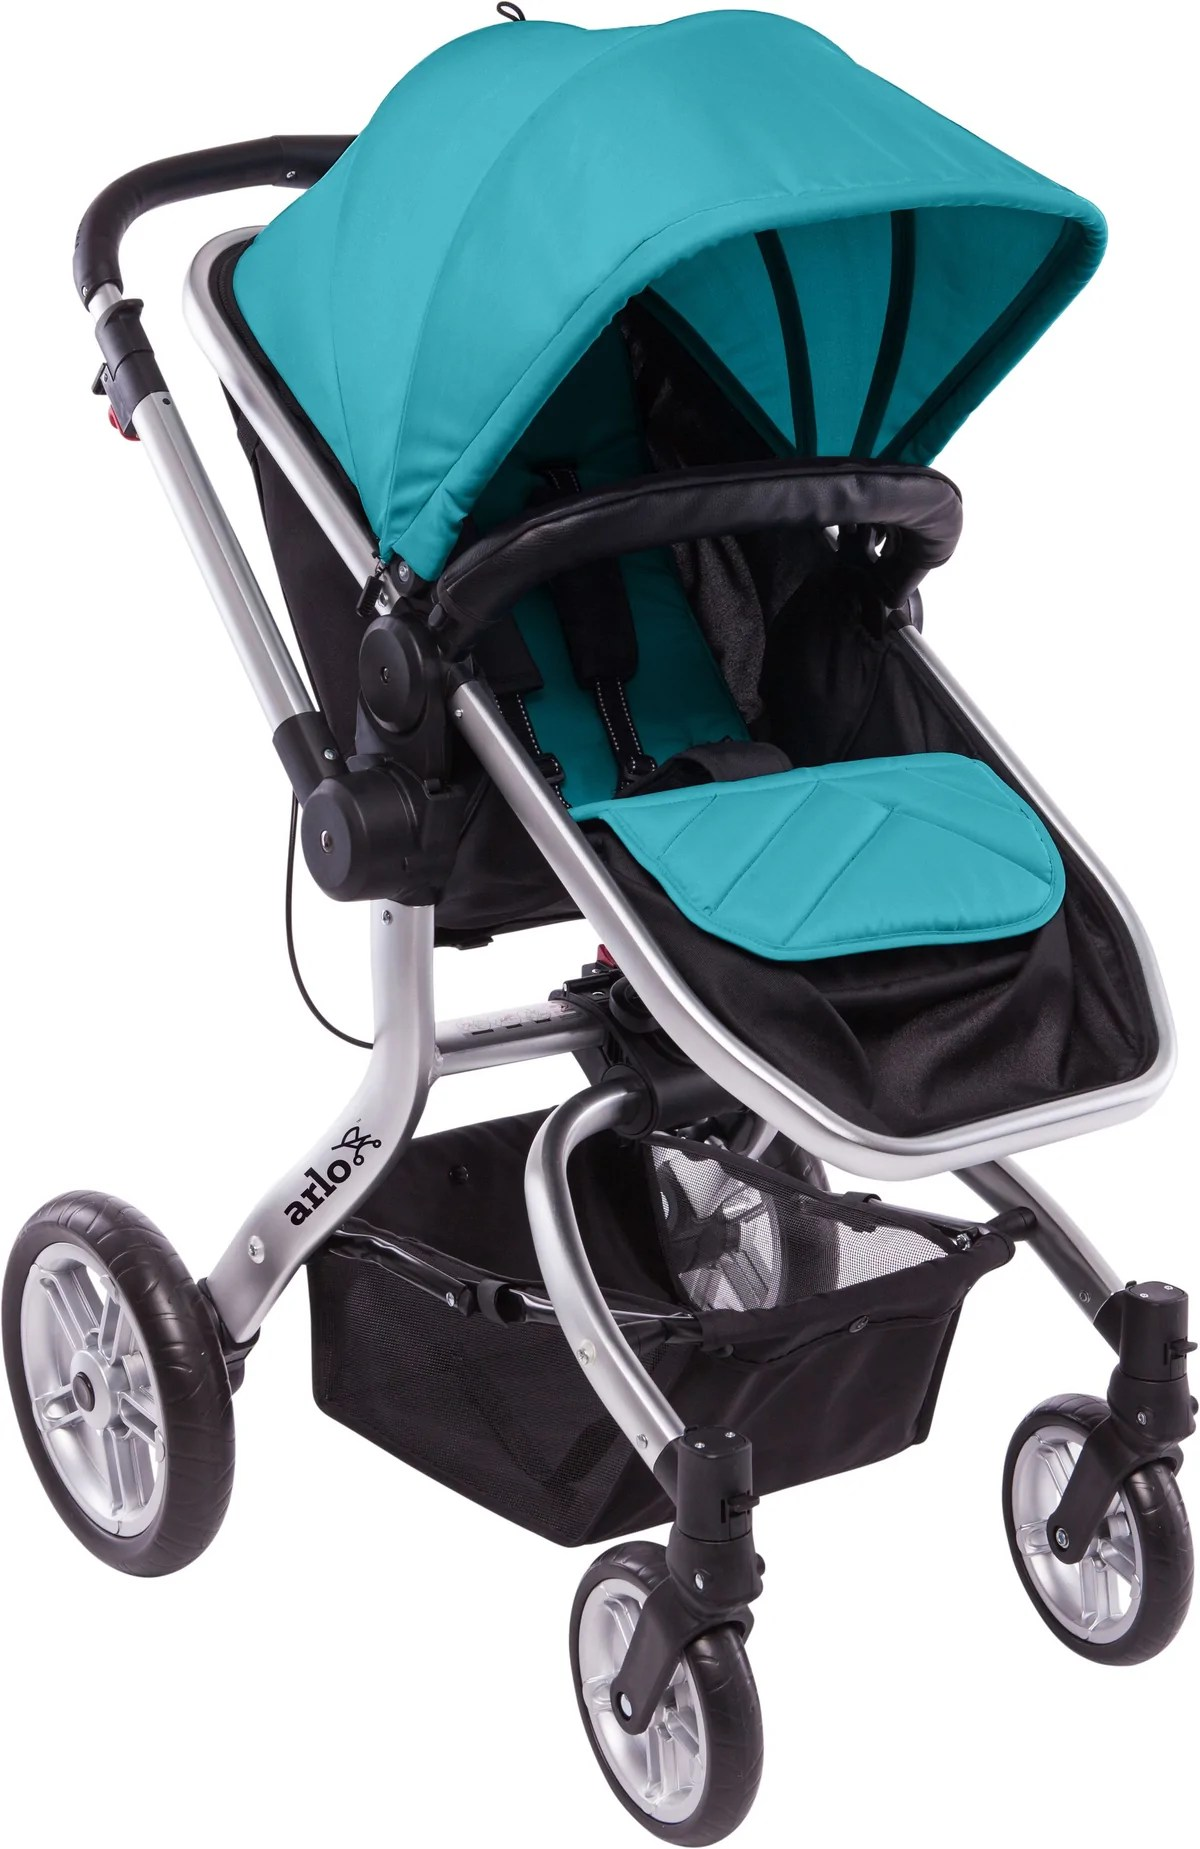 Steelcraft Infant Carrier Dimensions Arlo Stroller